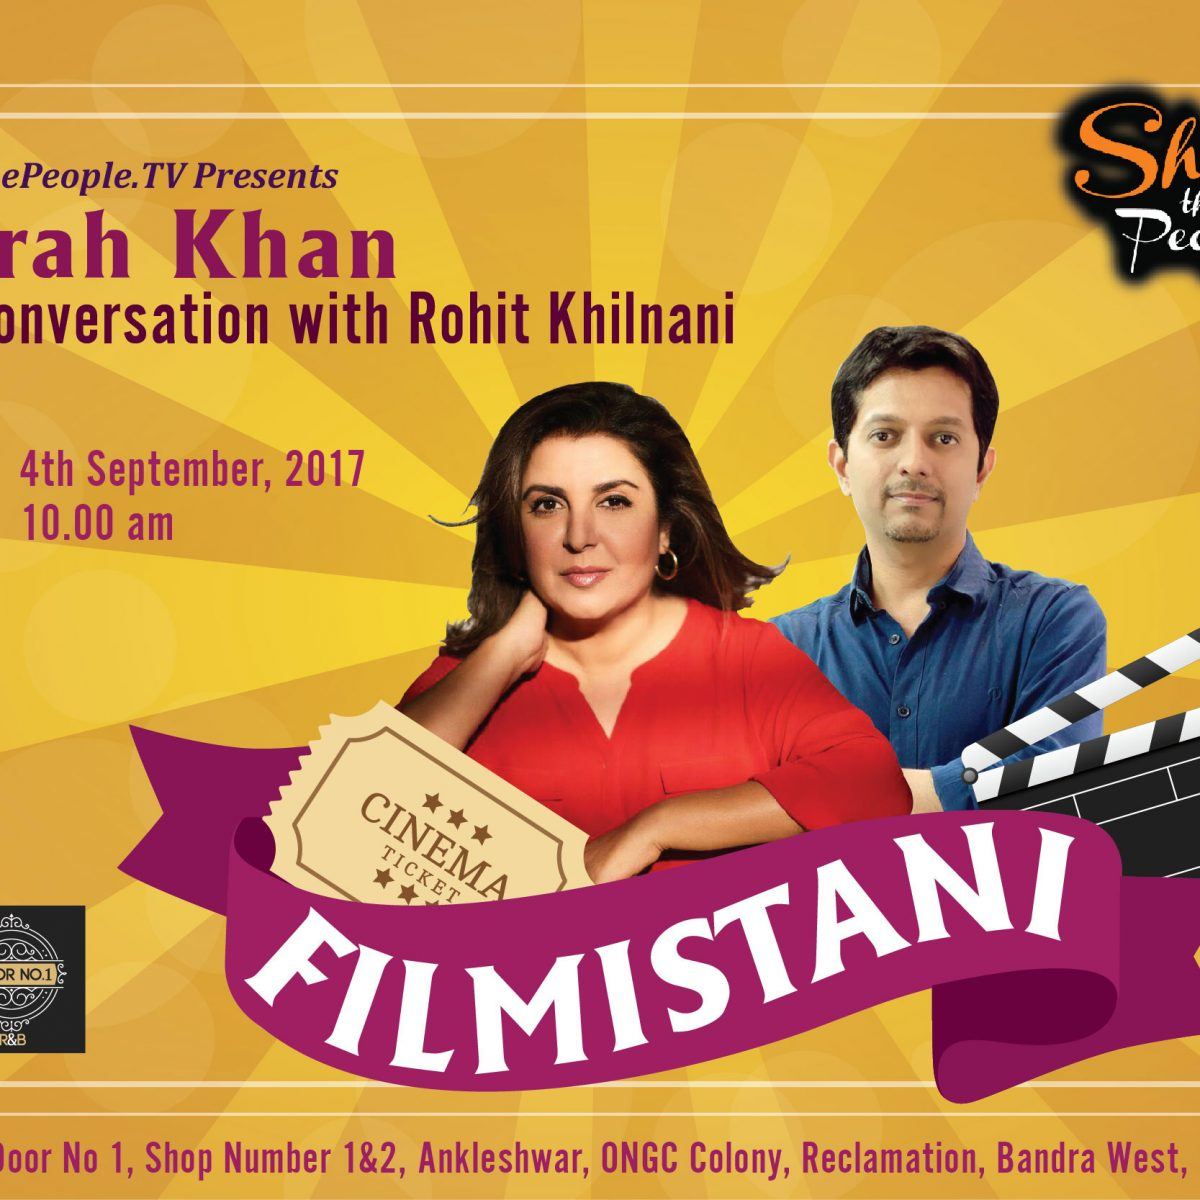 Filmistani with Farah Khan